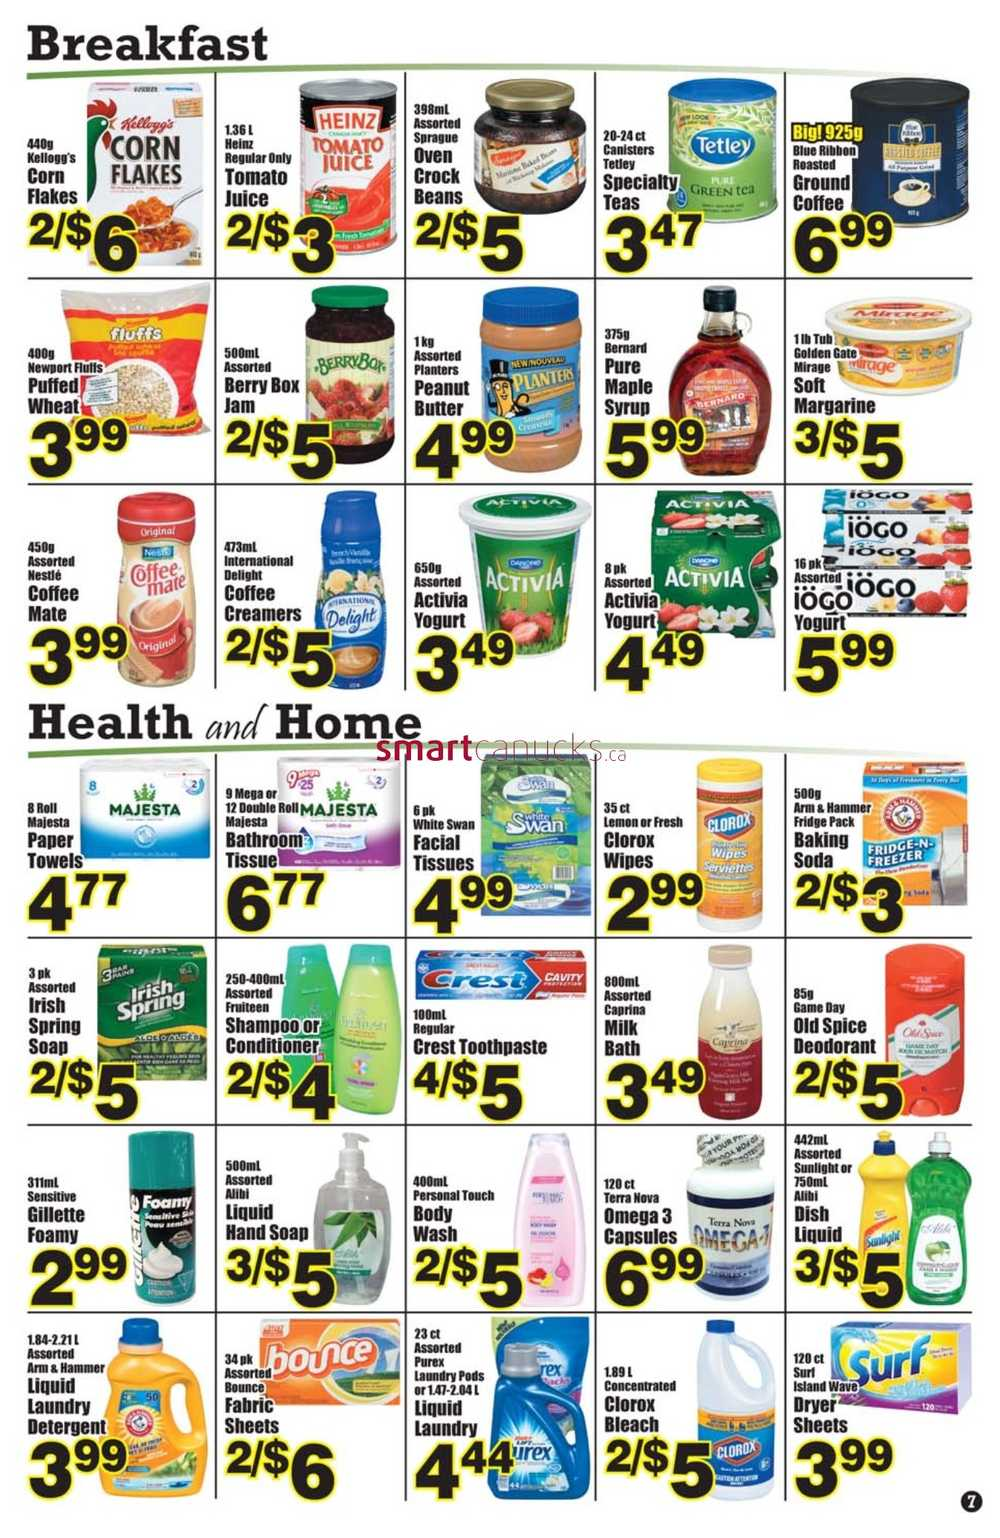 graphic regarding Coupongreat Com Printable Coupons called Coupon codes for house products printable - Coupon sconti italia